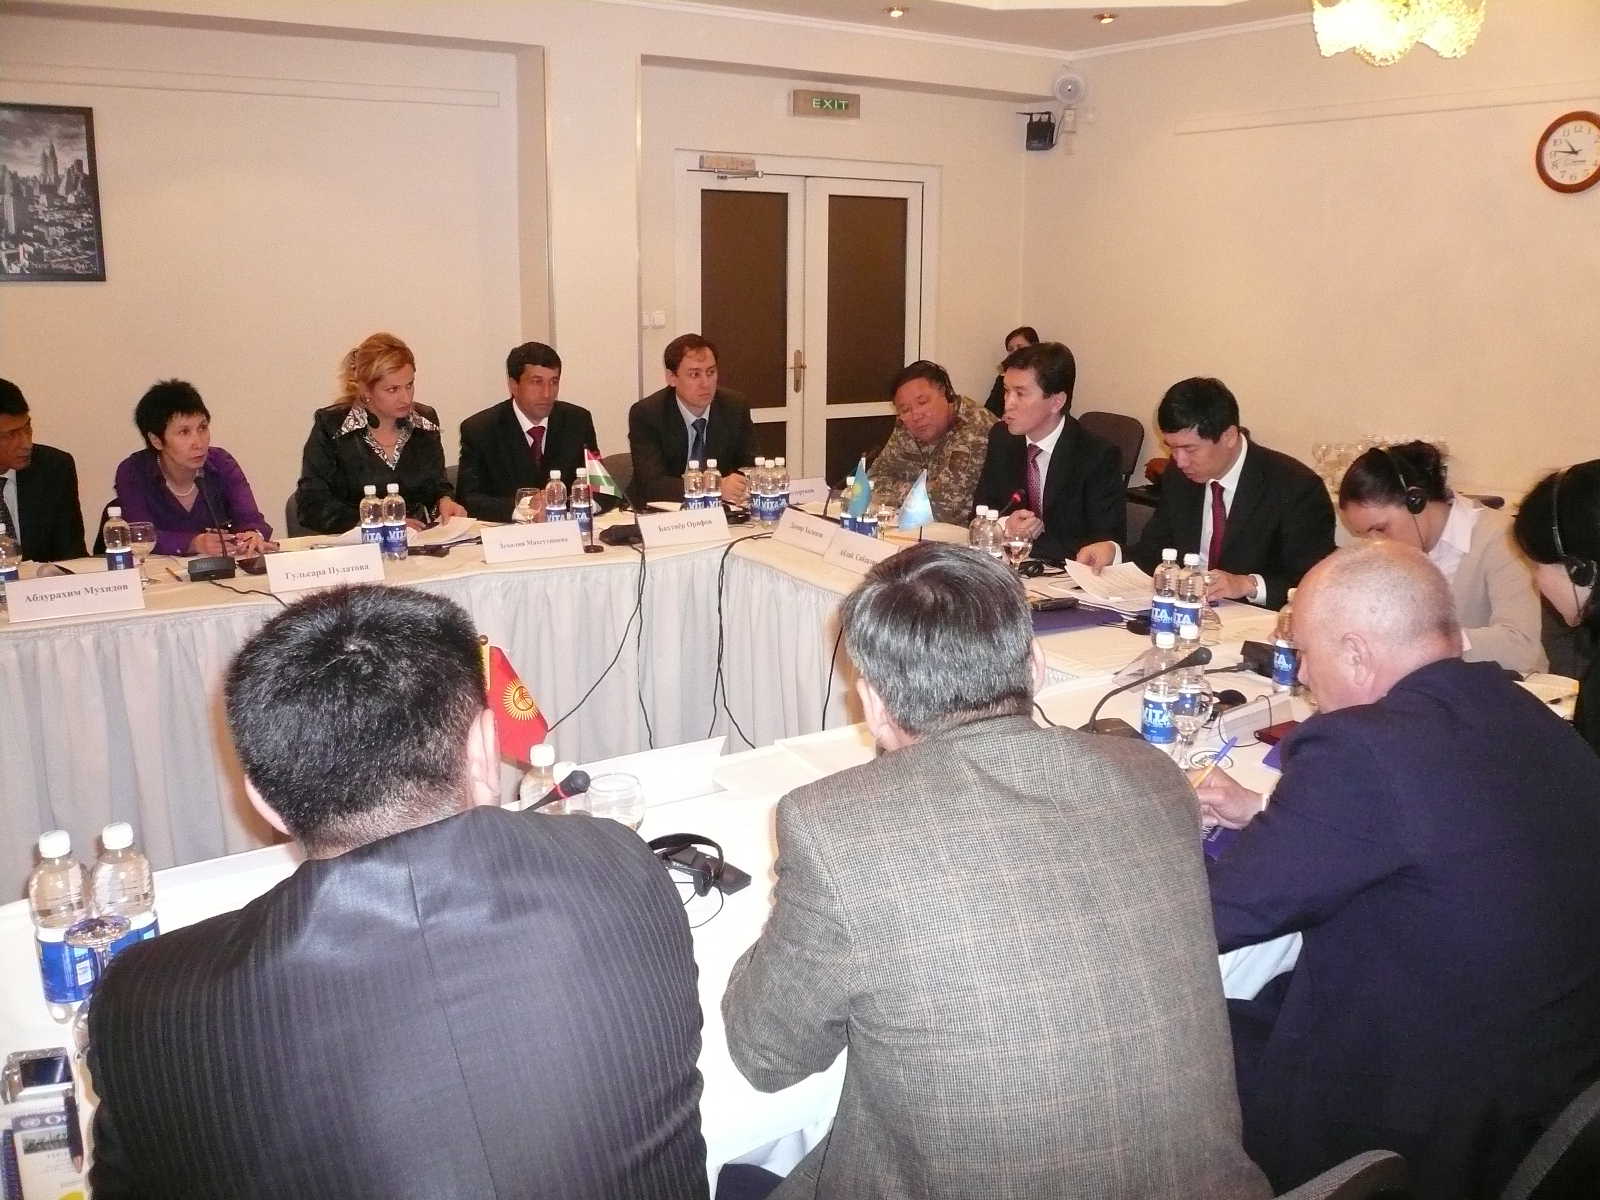 http://www.adrc.asia/adrcreport_e/items/Central_Asia.JPG